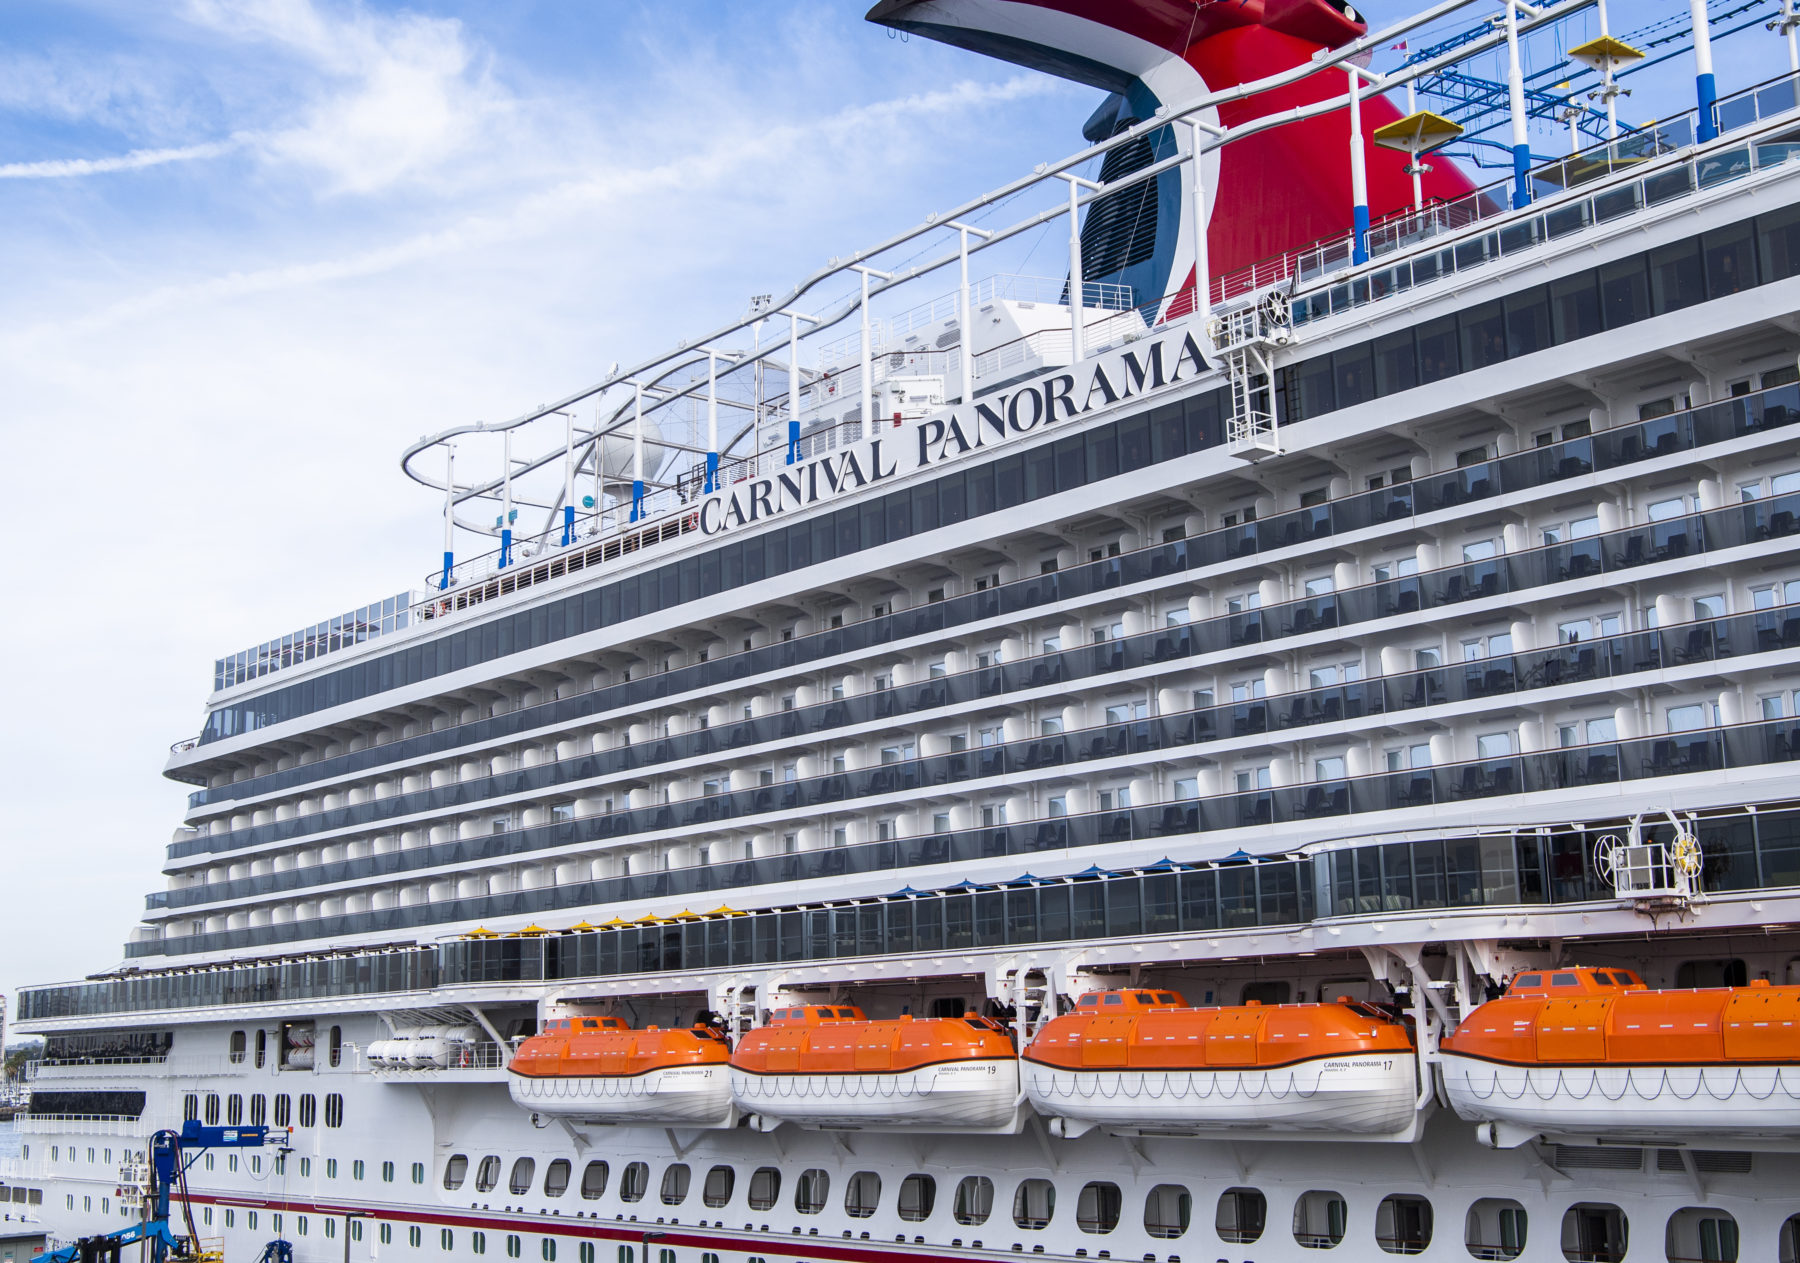 New Carnival Cruise Ship Expected To Triple The Number Of Passengers To Long Beach Long Beach Post News